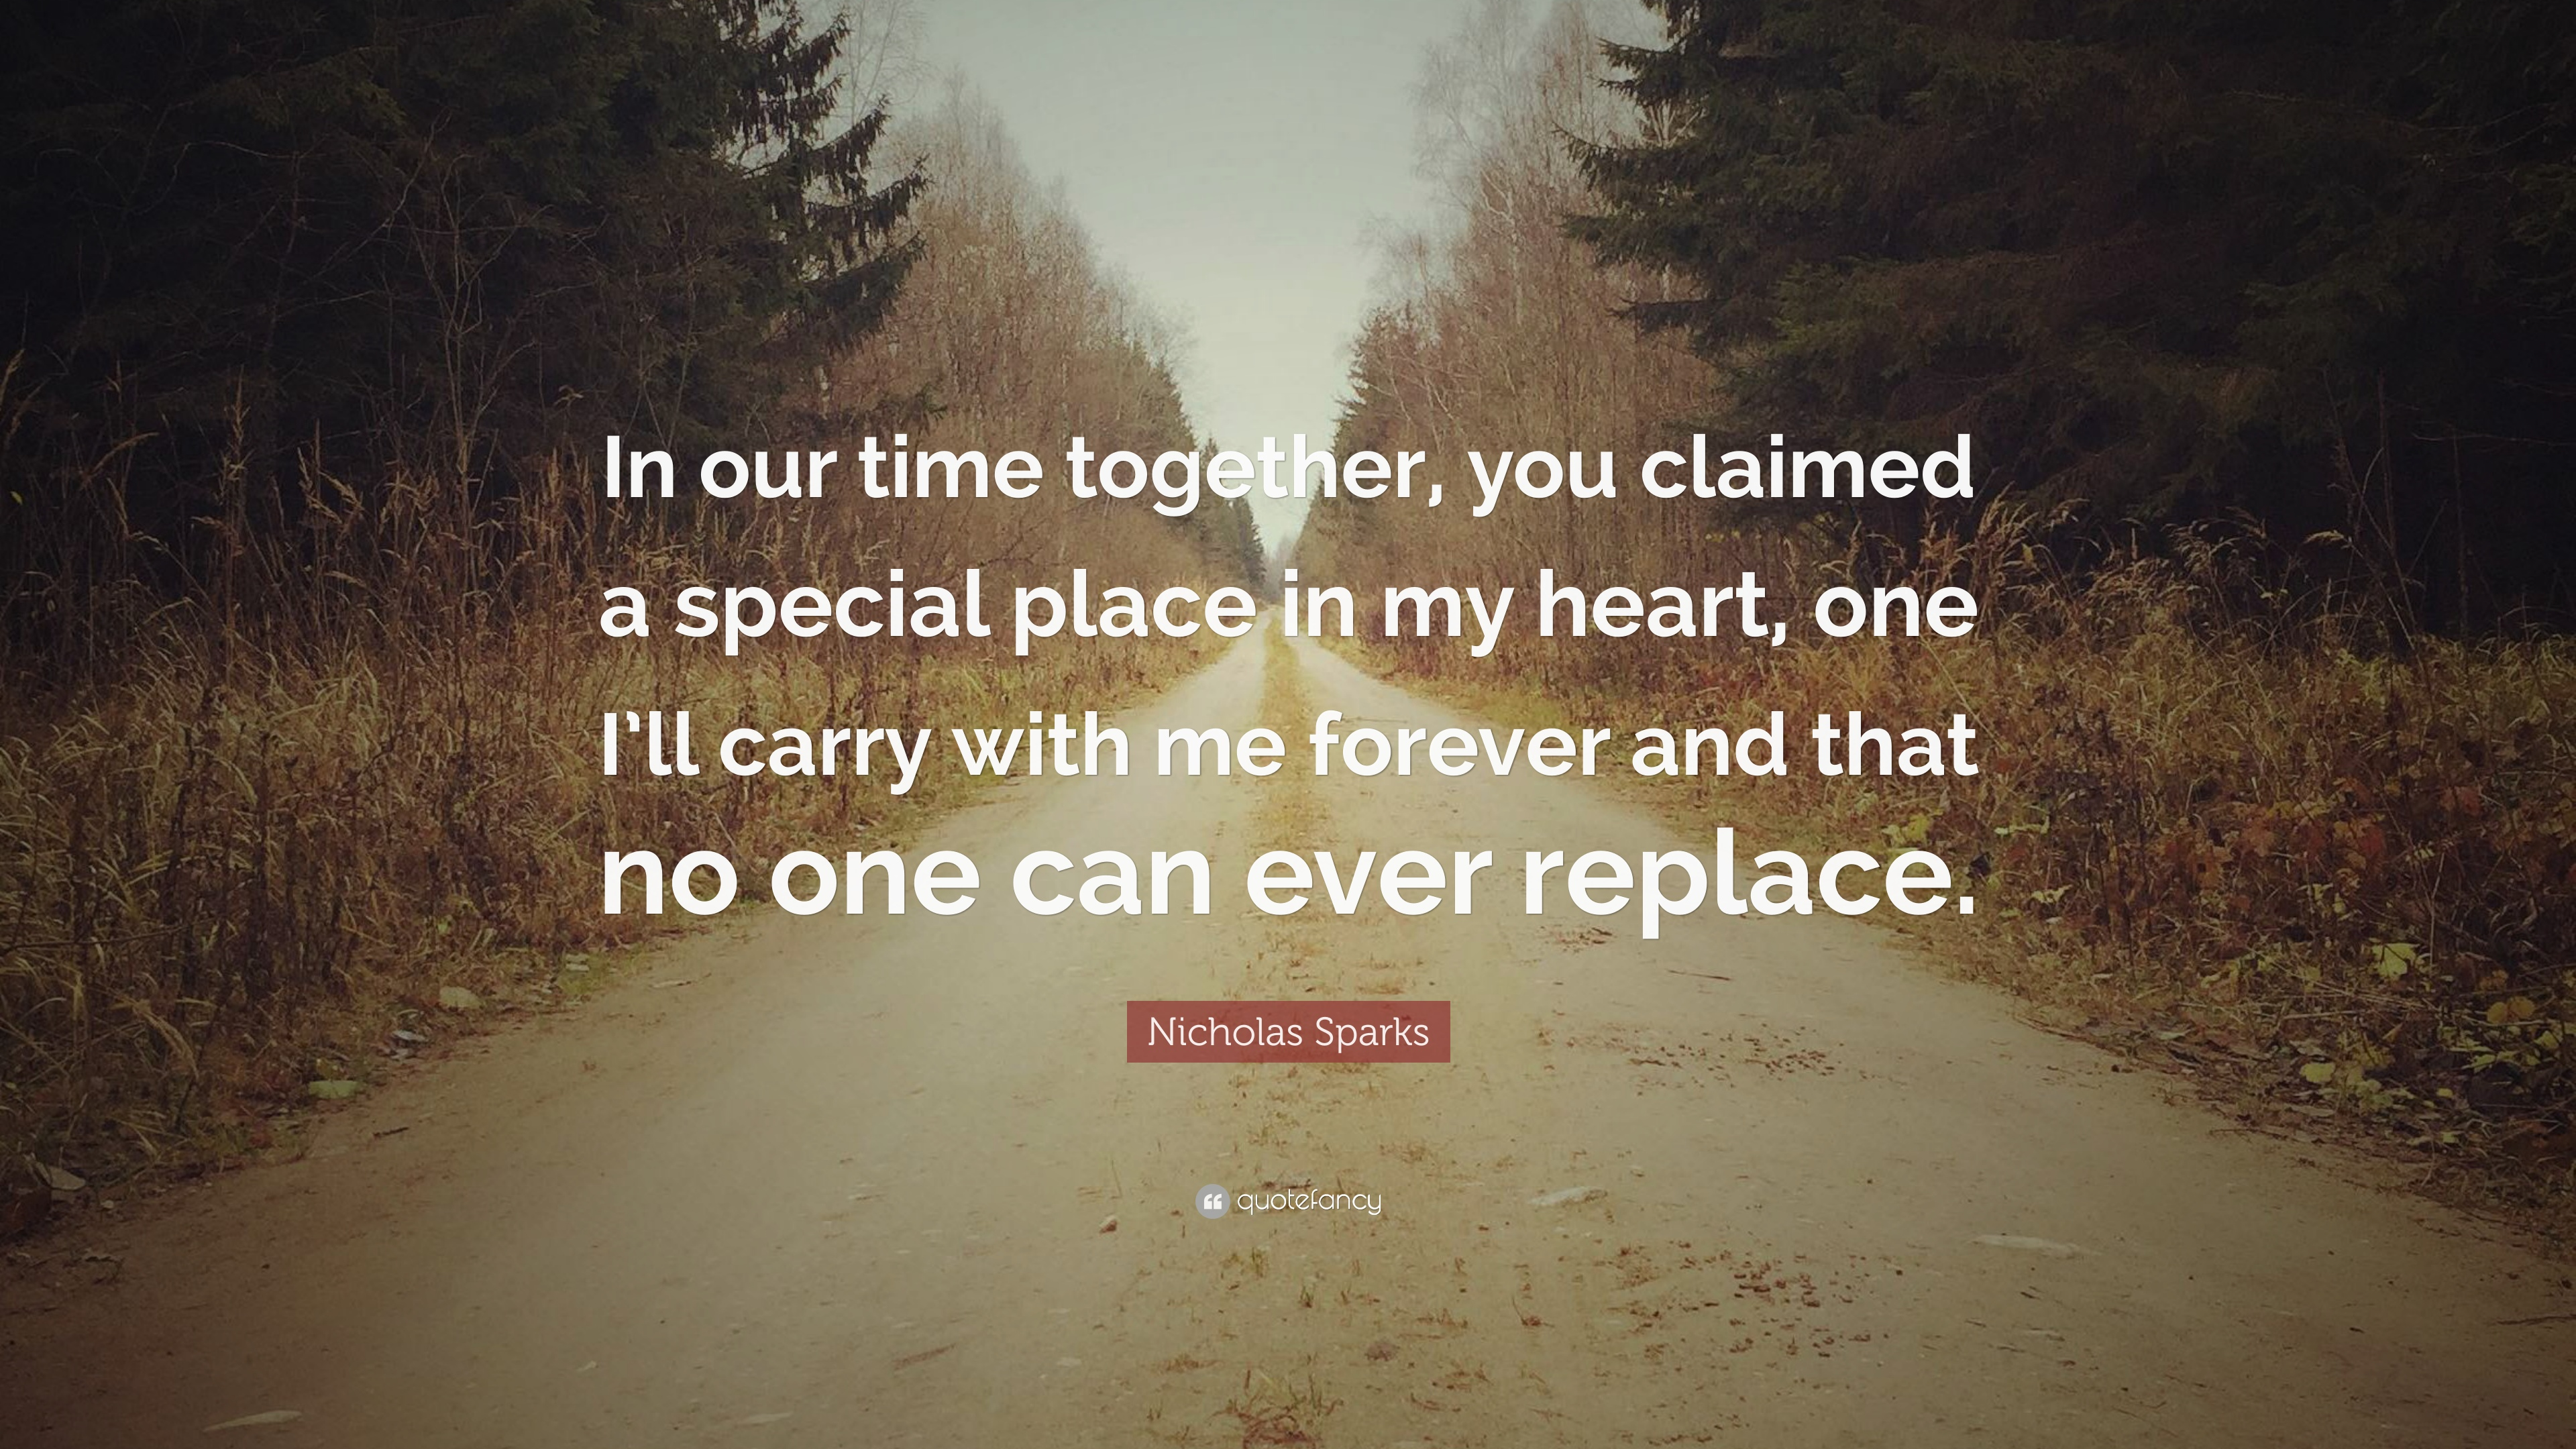 Nicholas Sparks Quote In Our Time Together You Claimed A Special